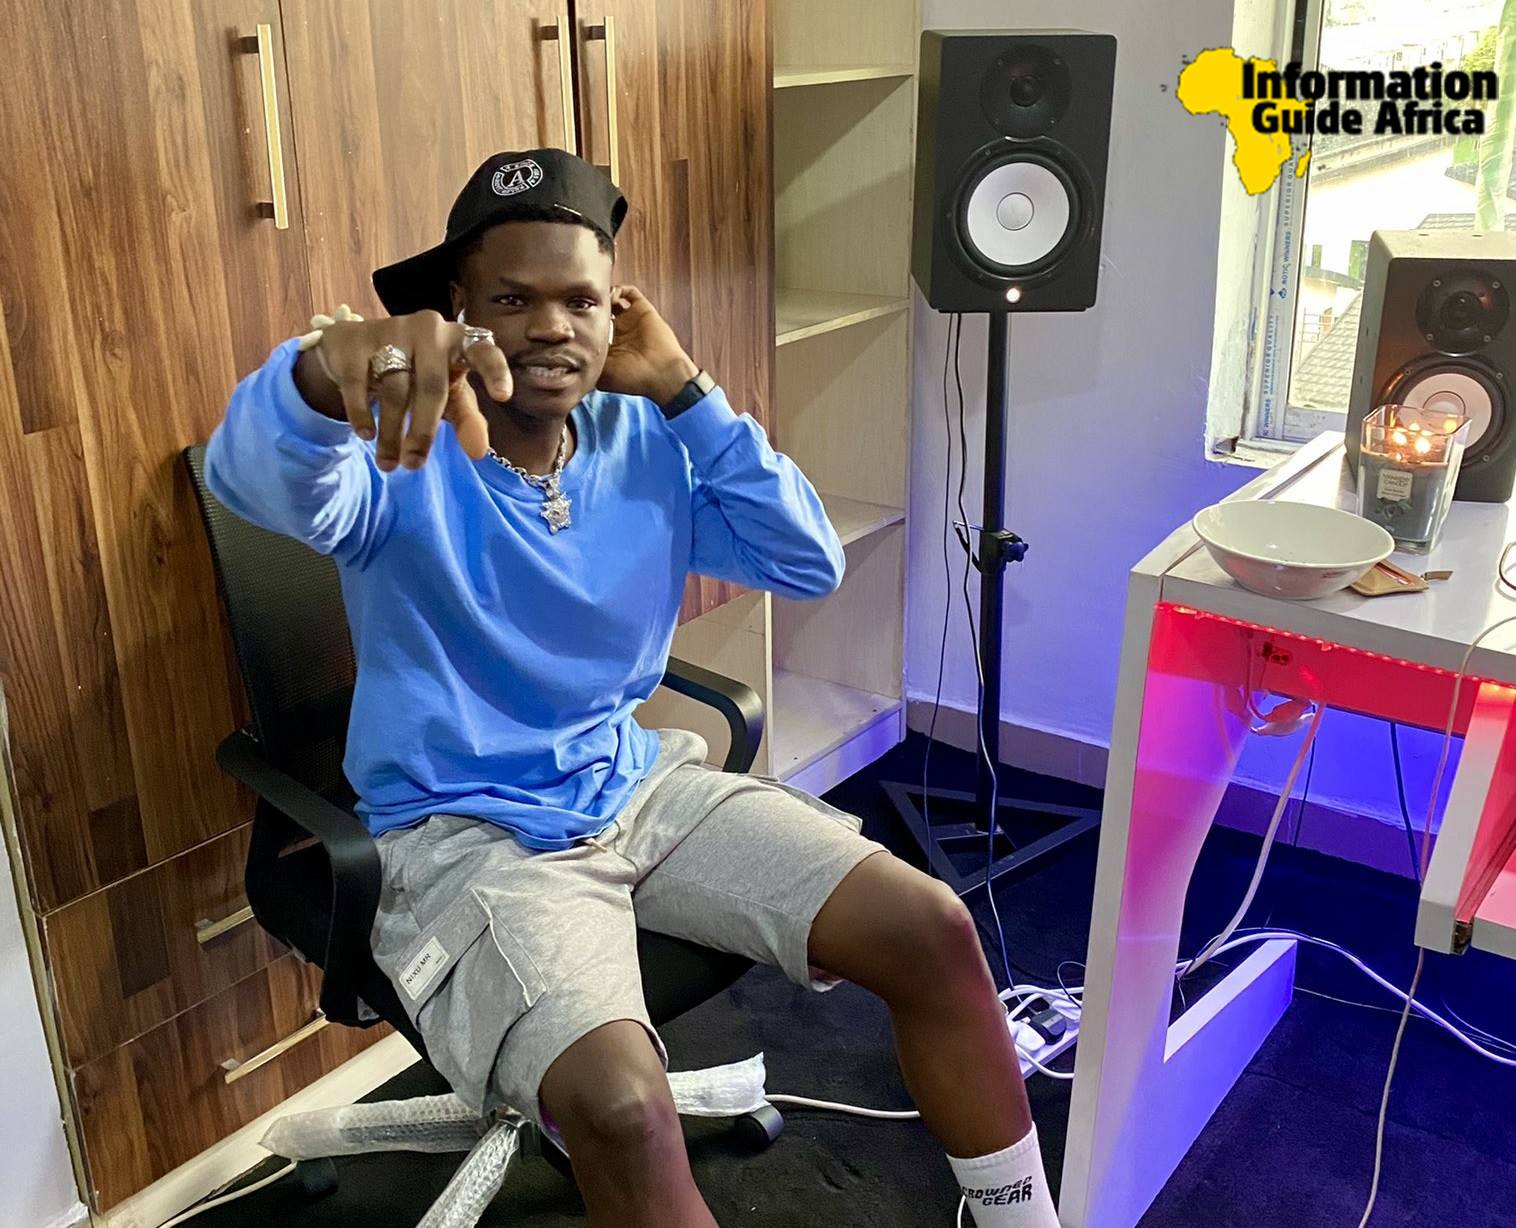 Bad Boy Timz Biography, Age, Early Life, Family, Education, Career And Net  Worth ~ Information Guide Africa